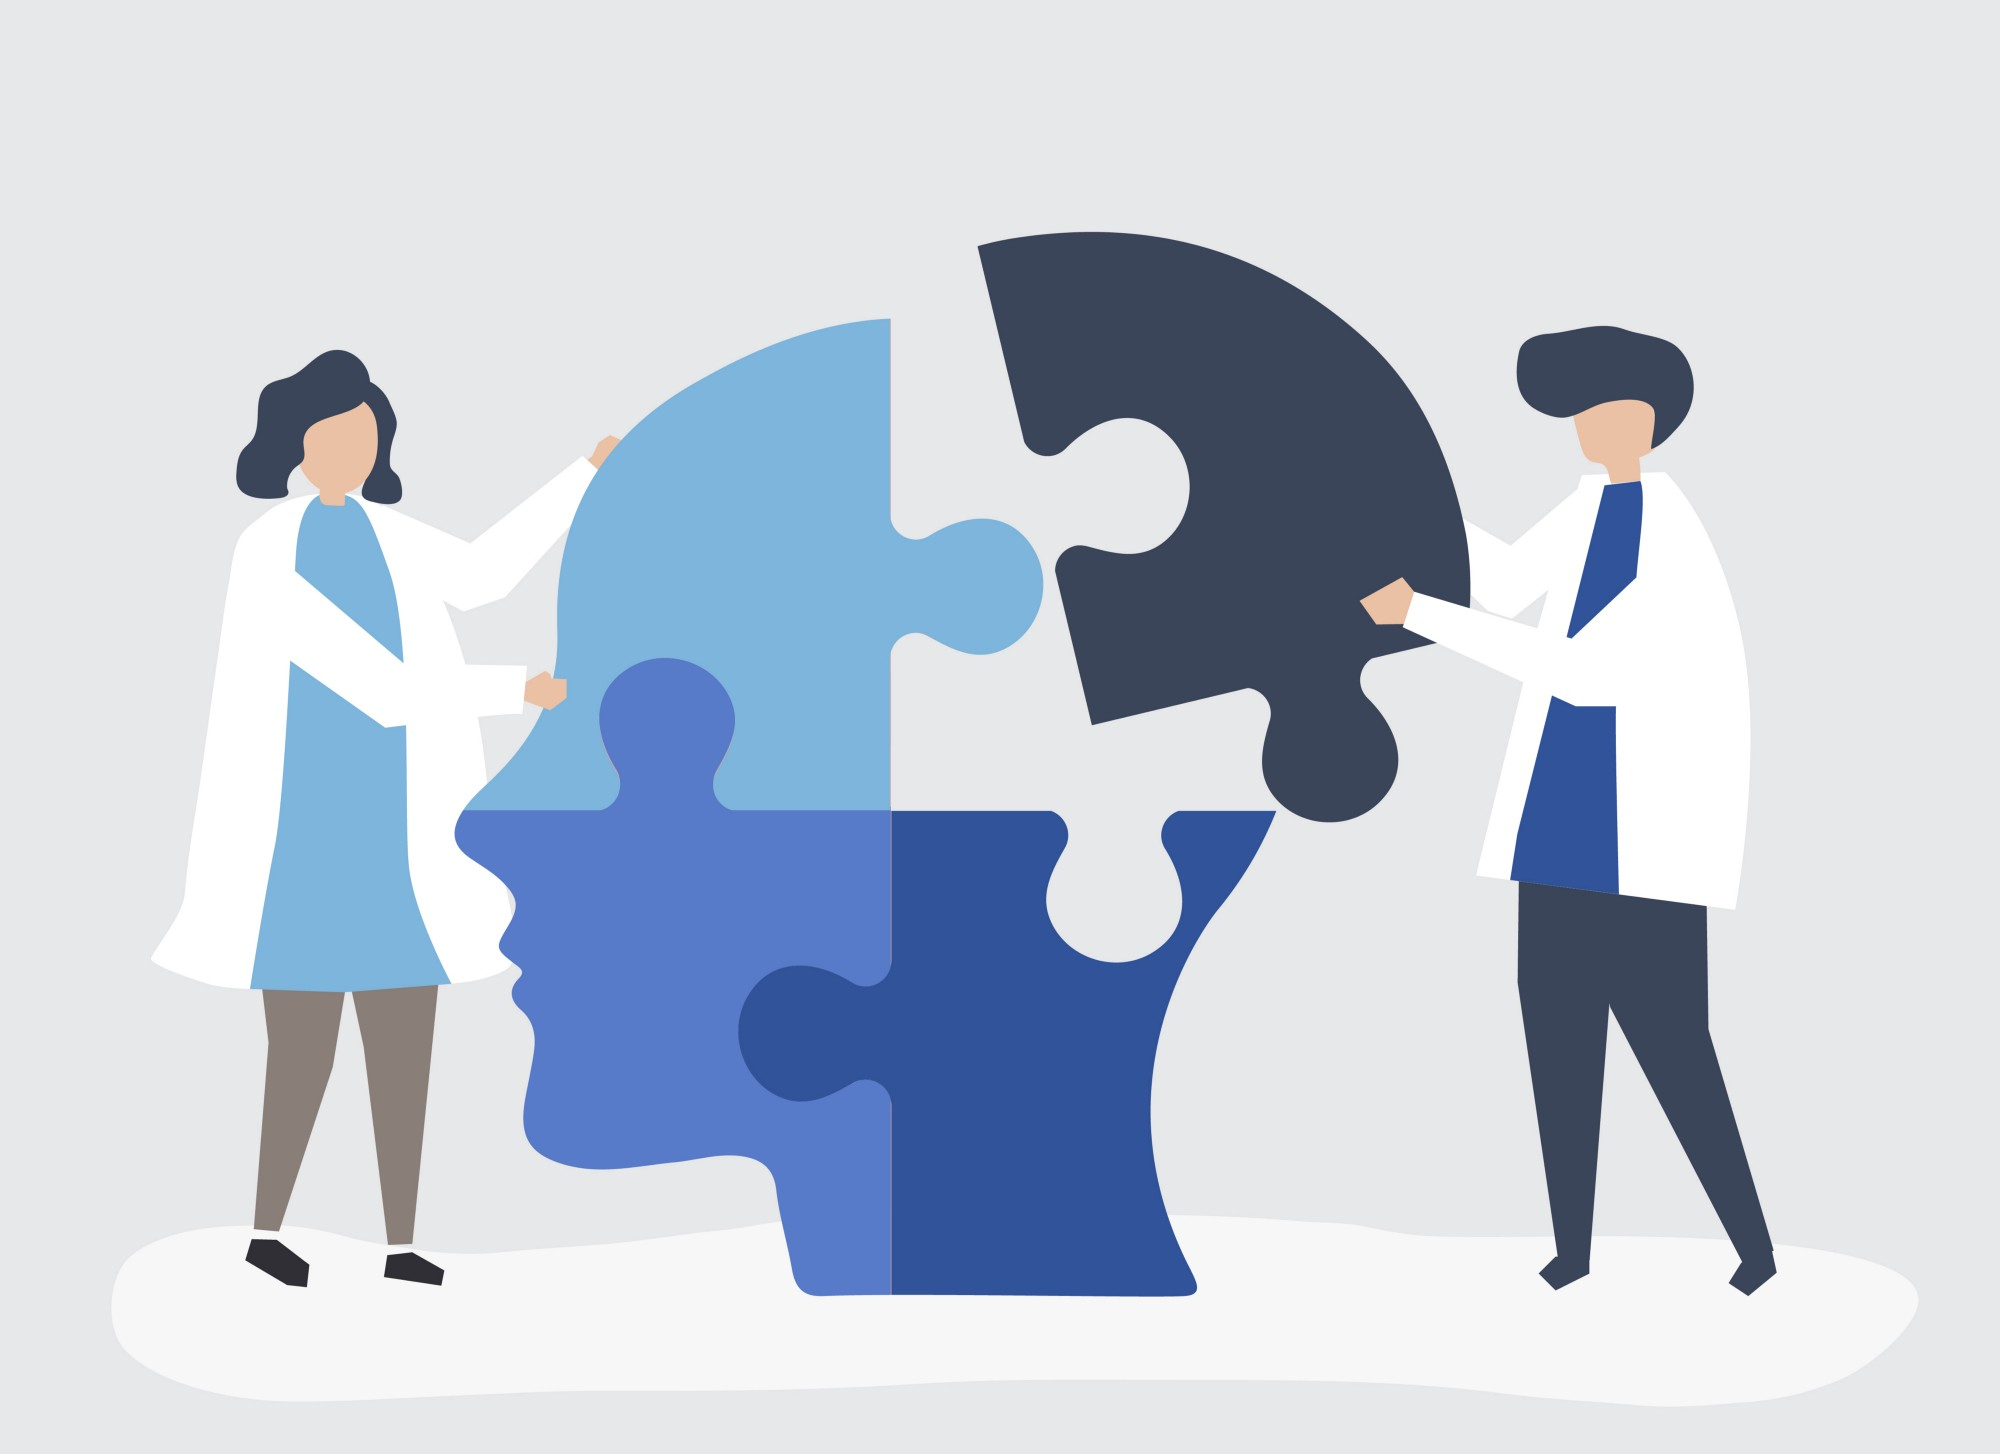 Vector of man and woman assembling a head out of jigsaw pieces